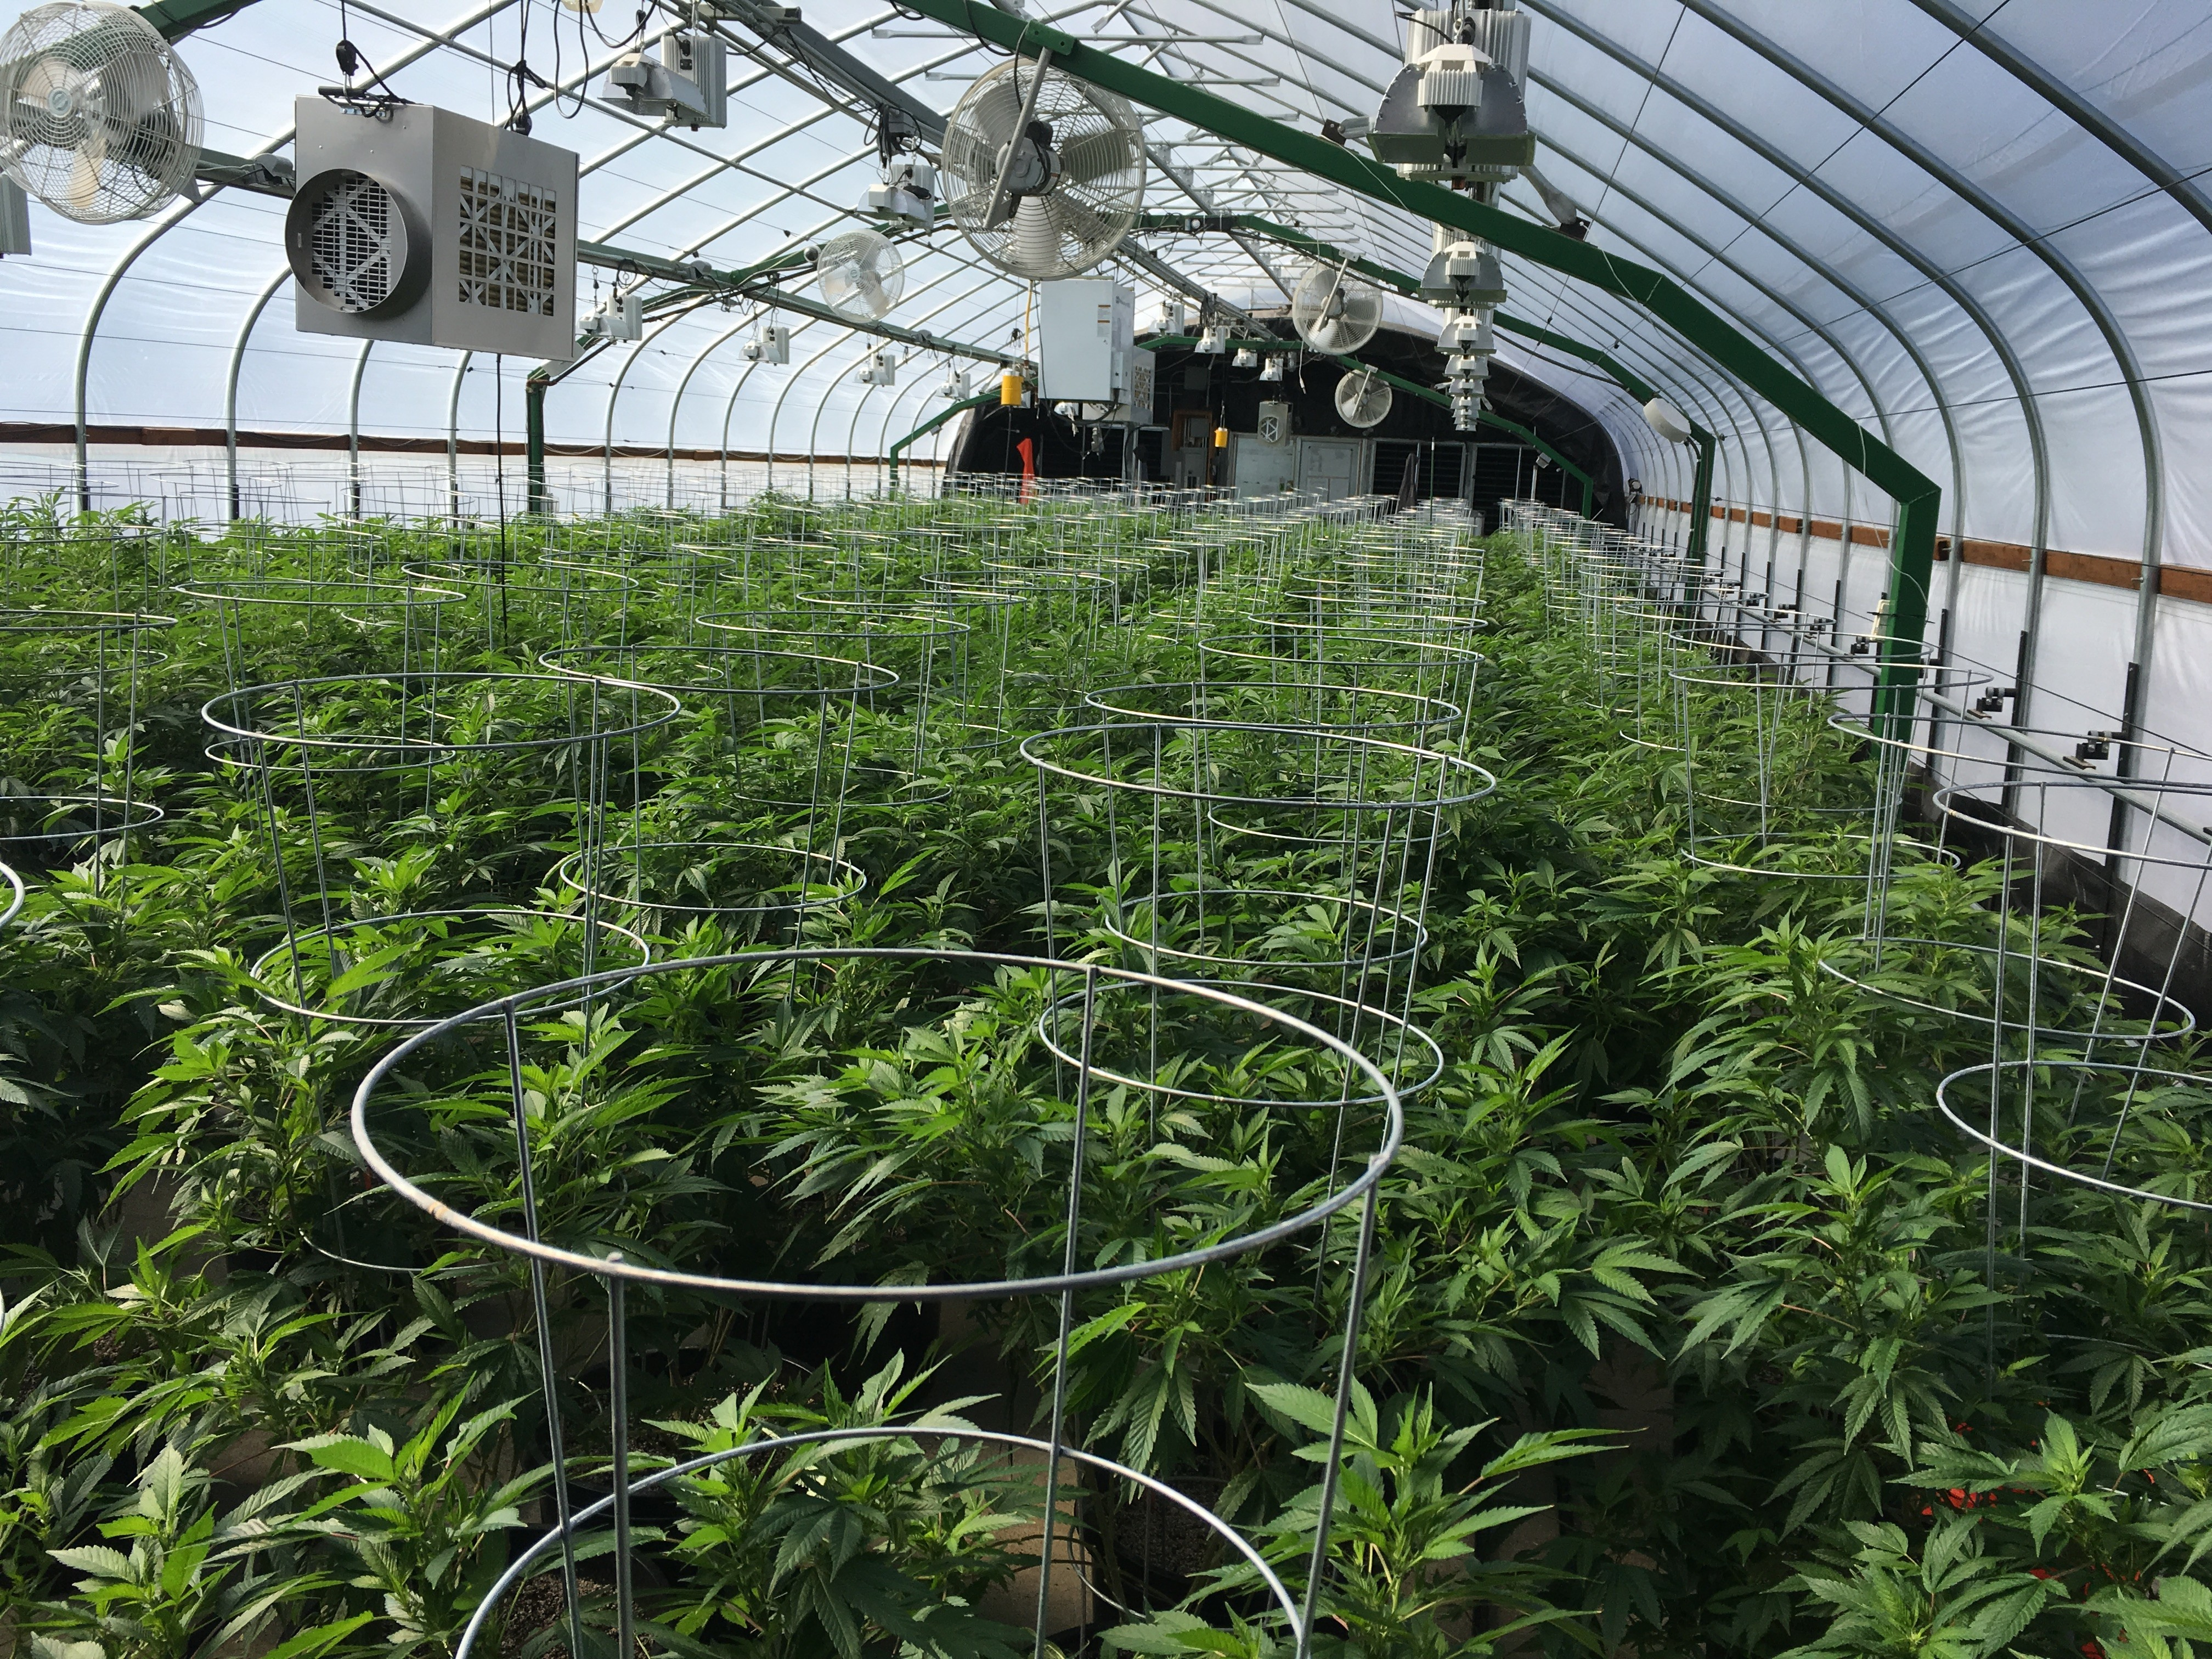 legal cannabis greenhouse tomato cages